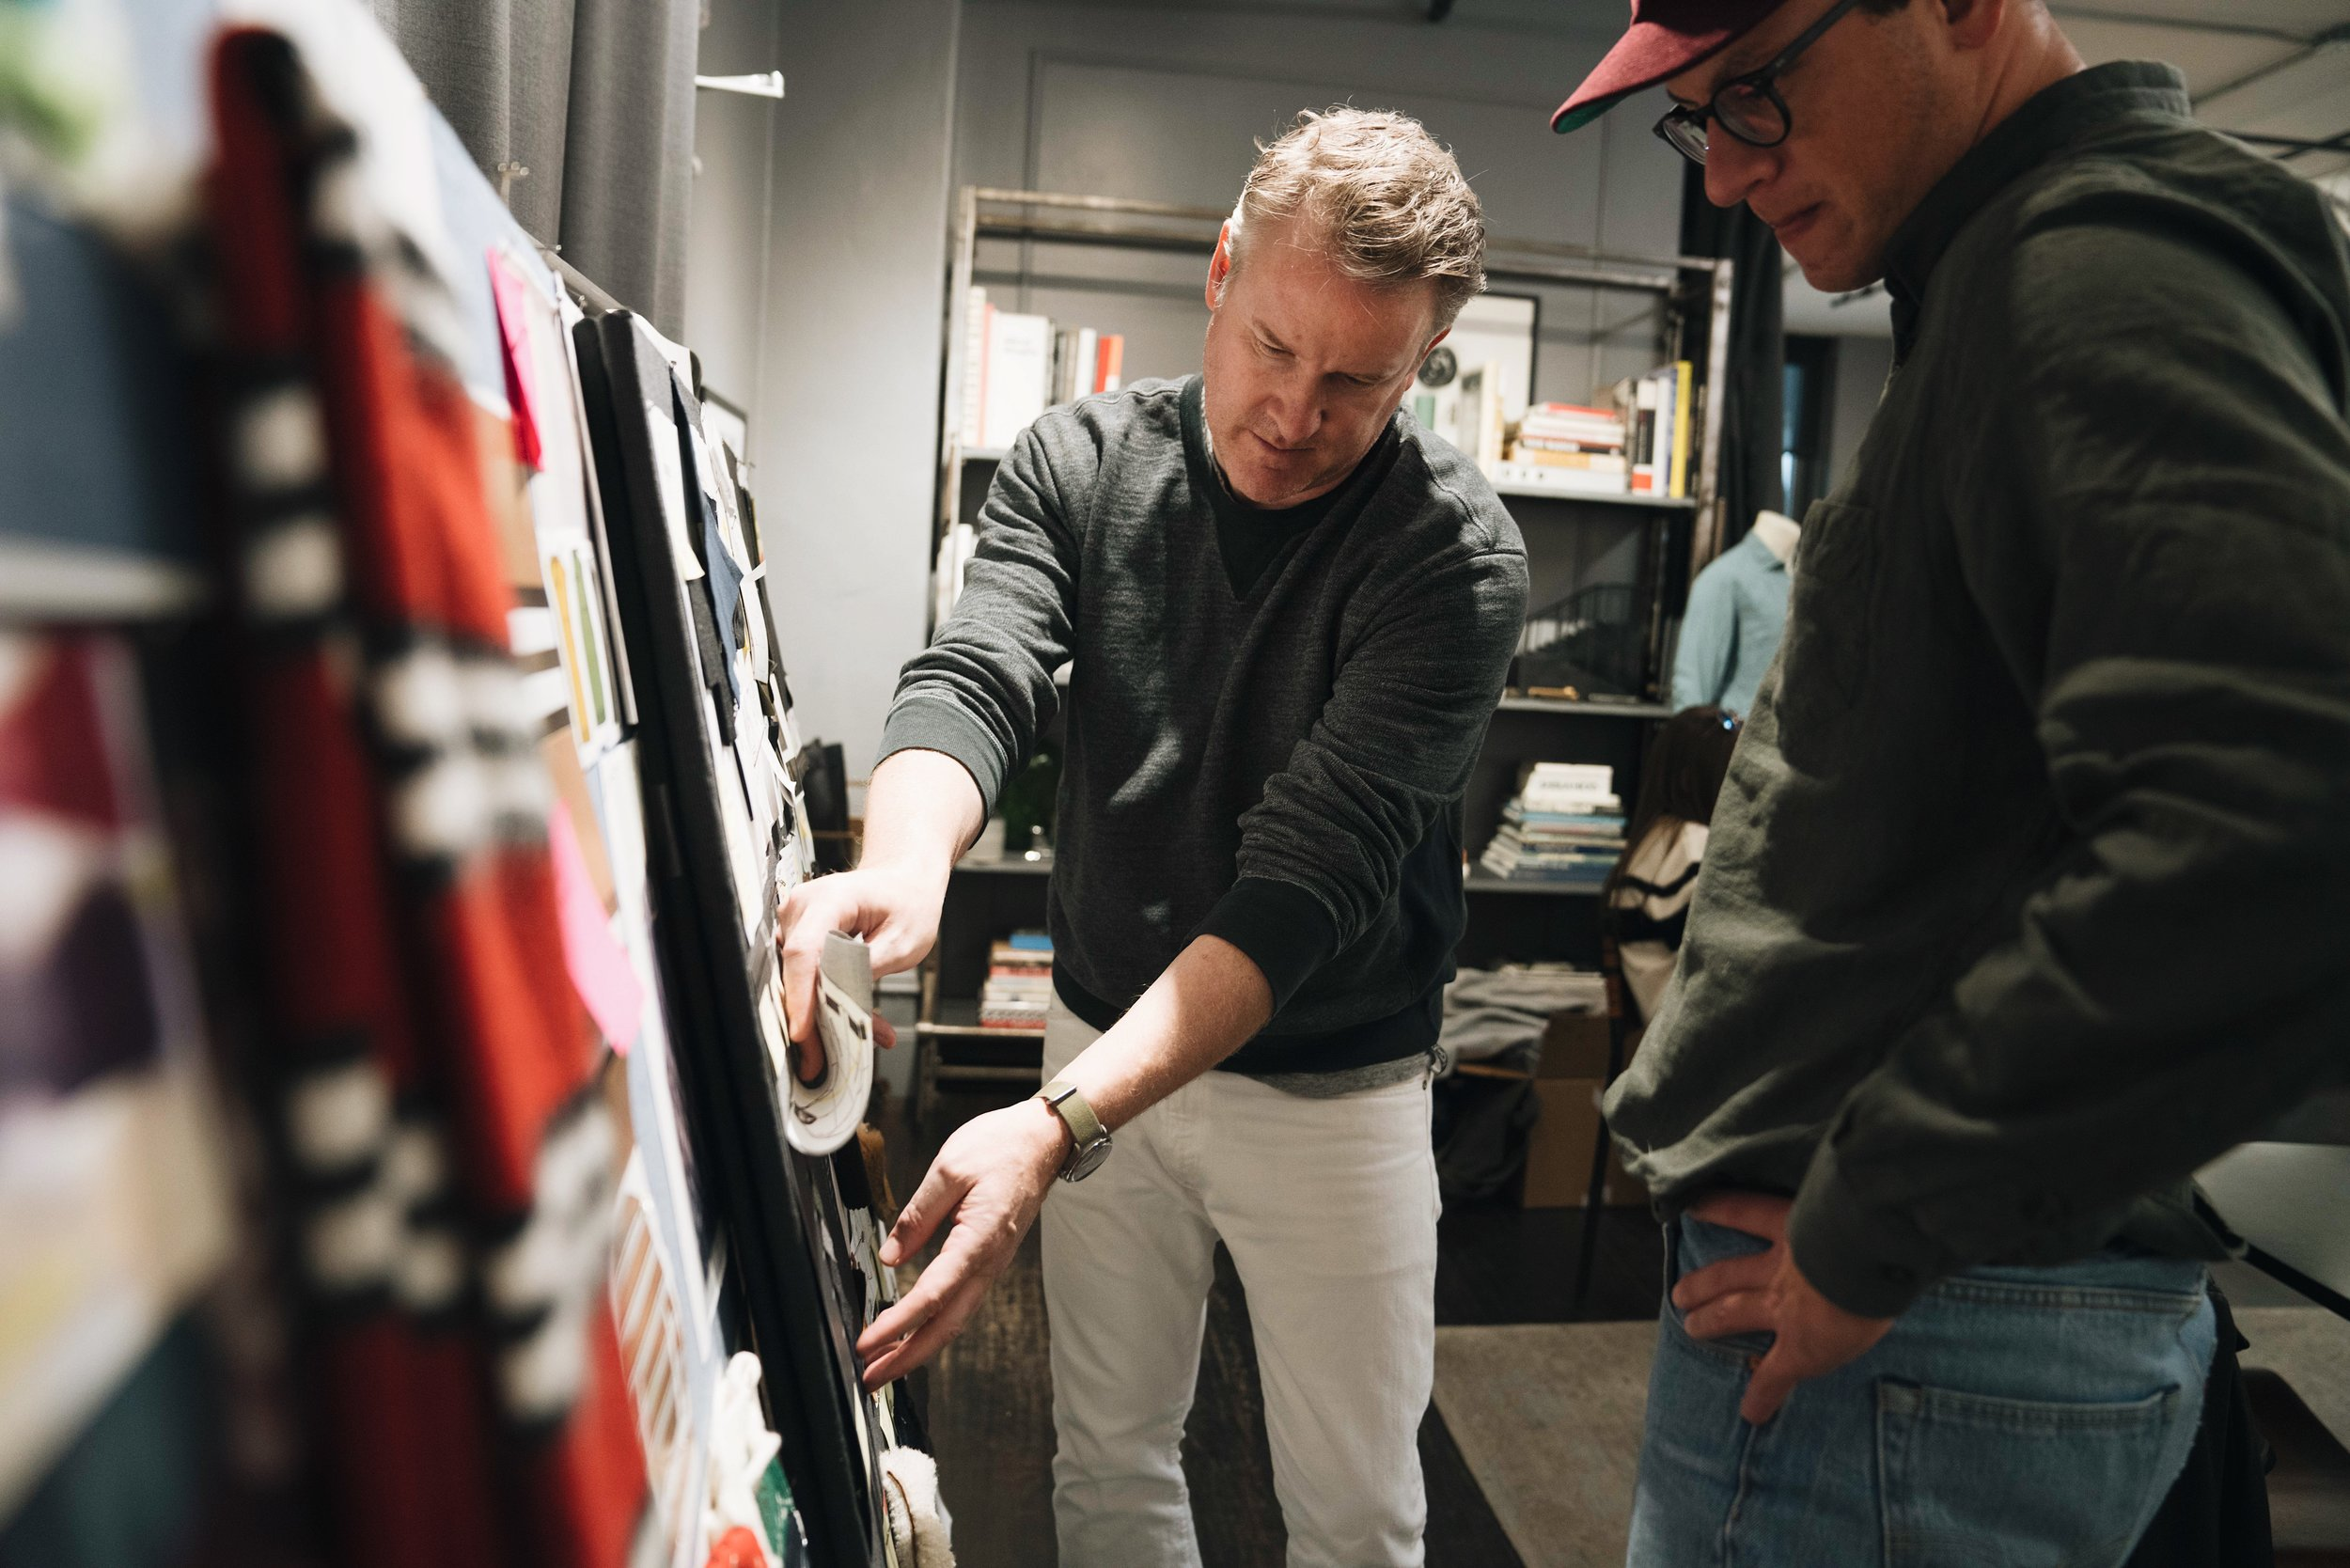 Discussing the upcoming collection on a mood board with one of his team members.